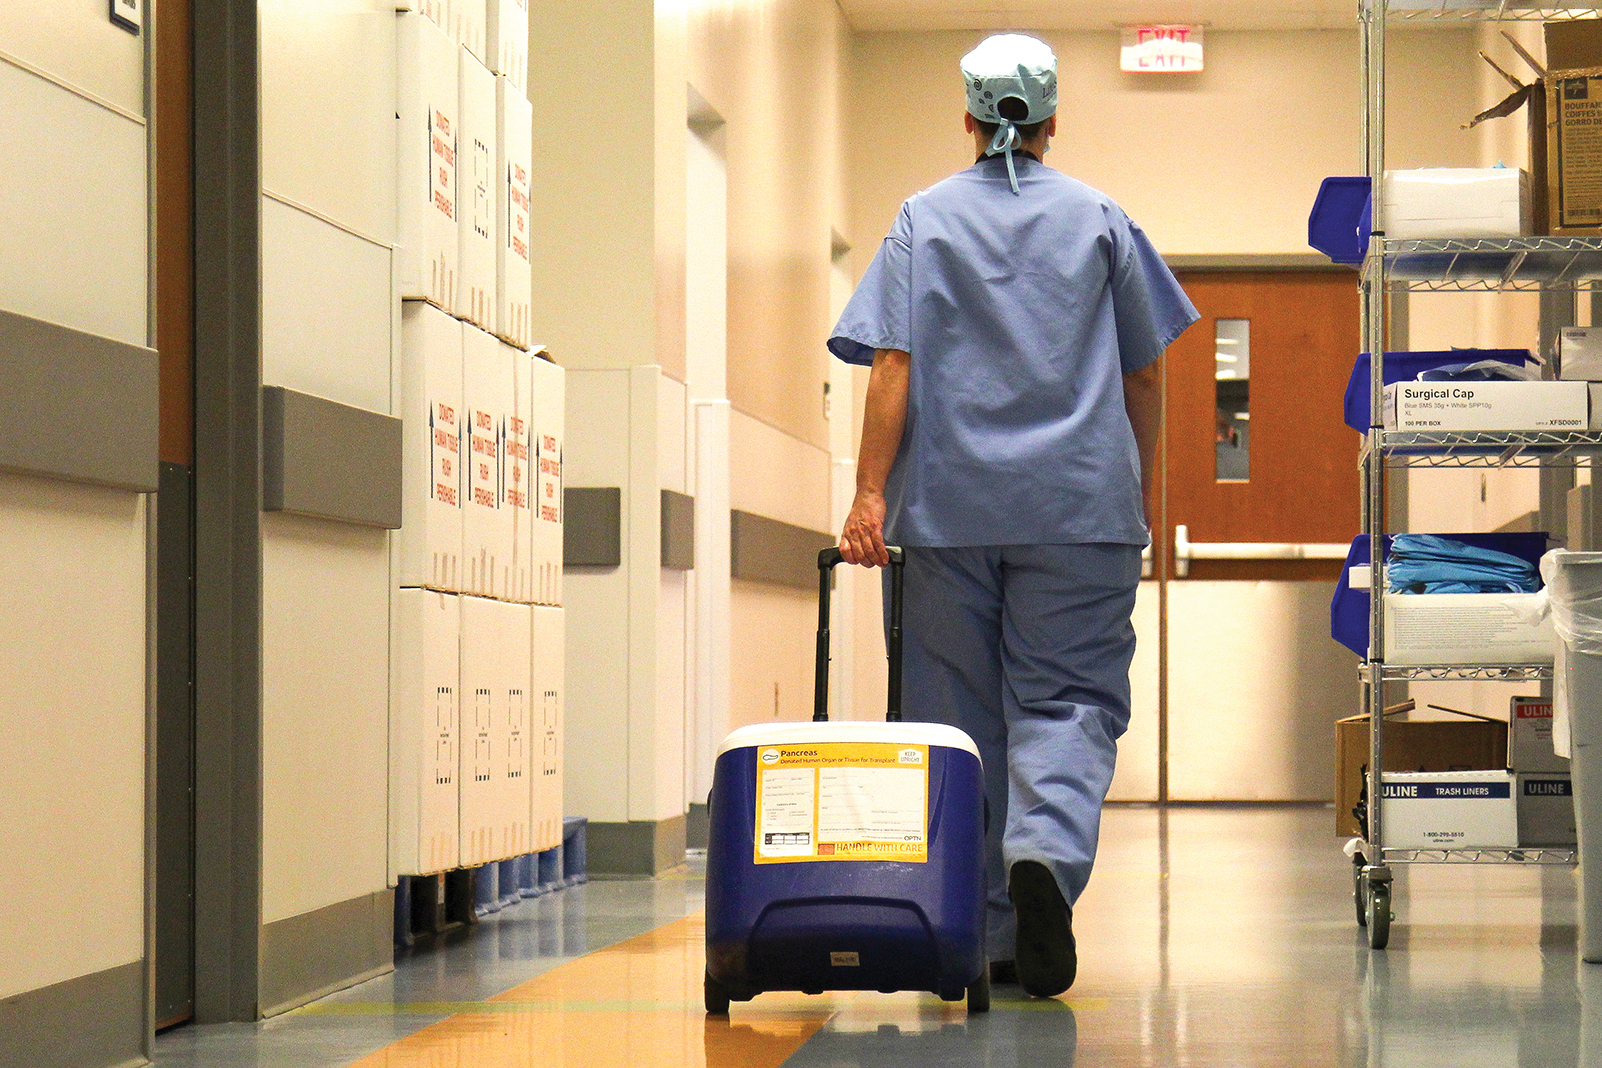 Organ transplantation has taken new strides with the University of Minnesota's Institute for Engineering in Medicine